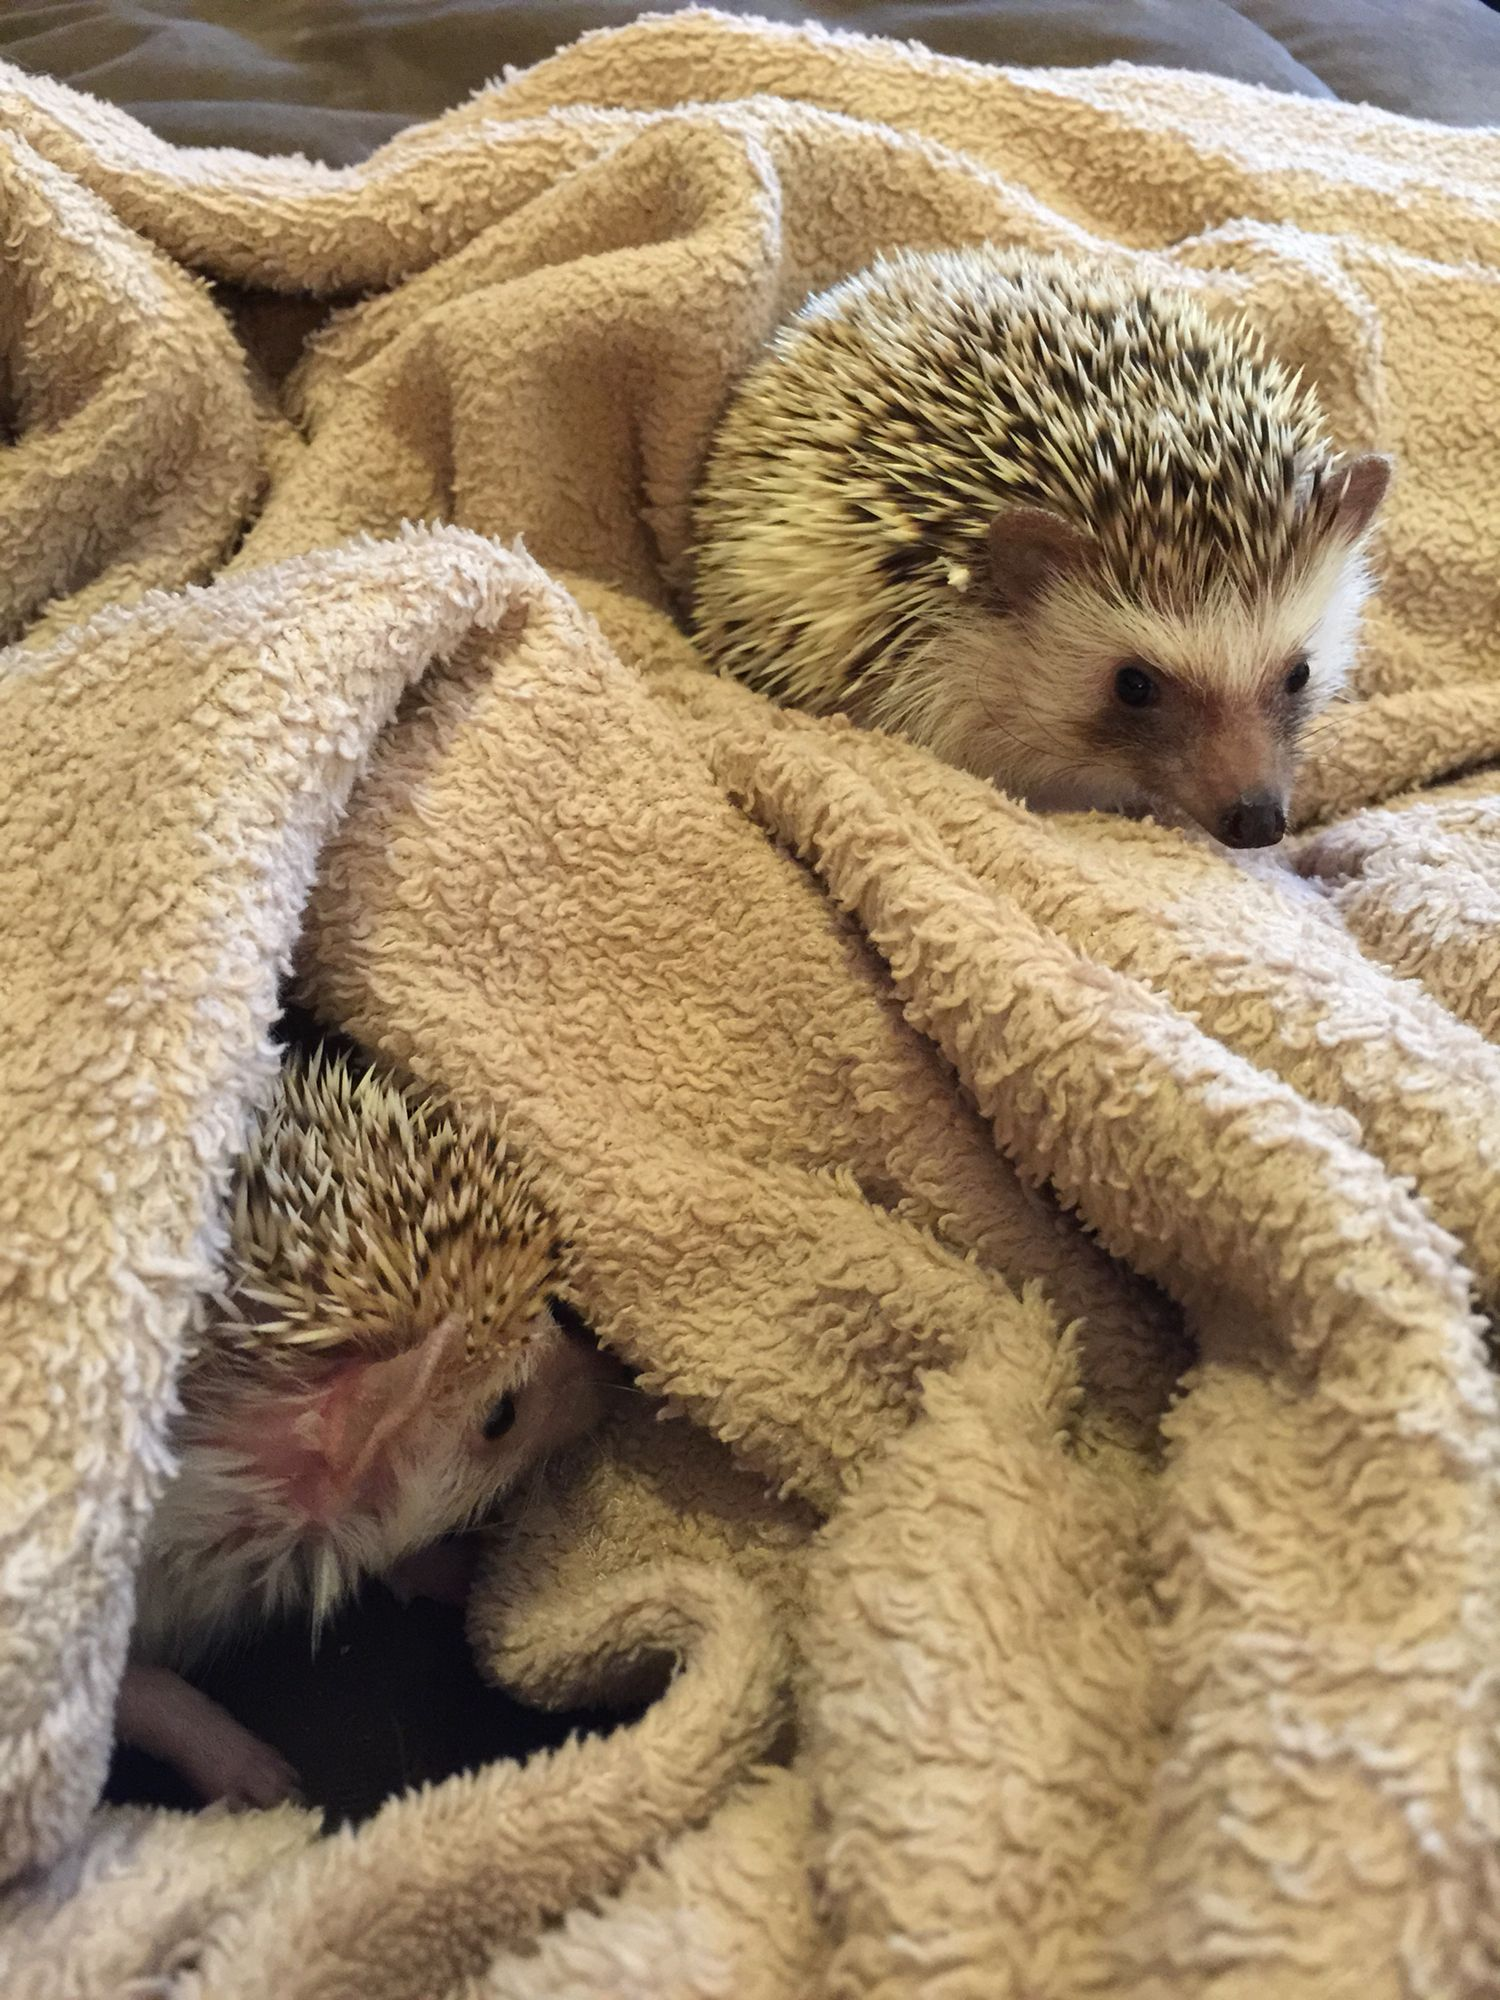 Meet Sonic and Luna, The Hedgehogs at The Redman Zoo! #Hedgehogs